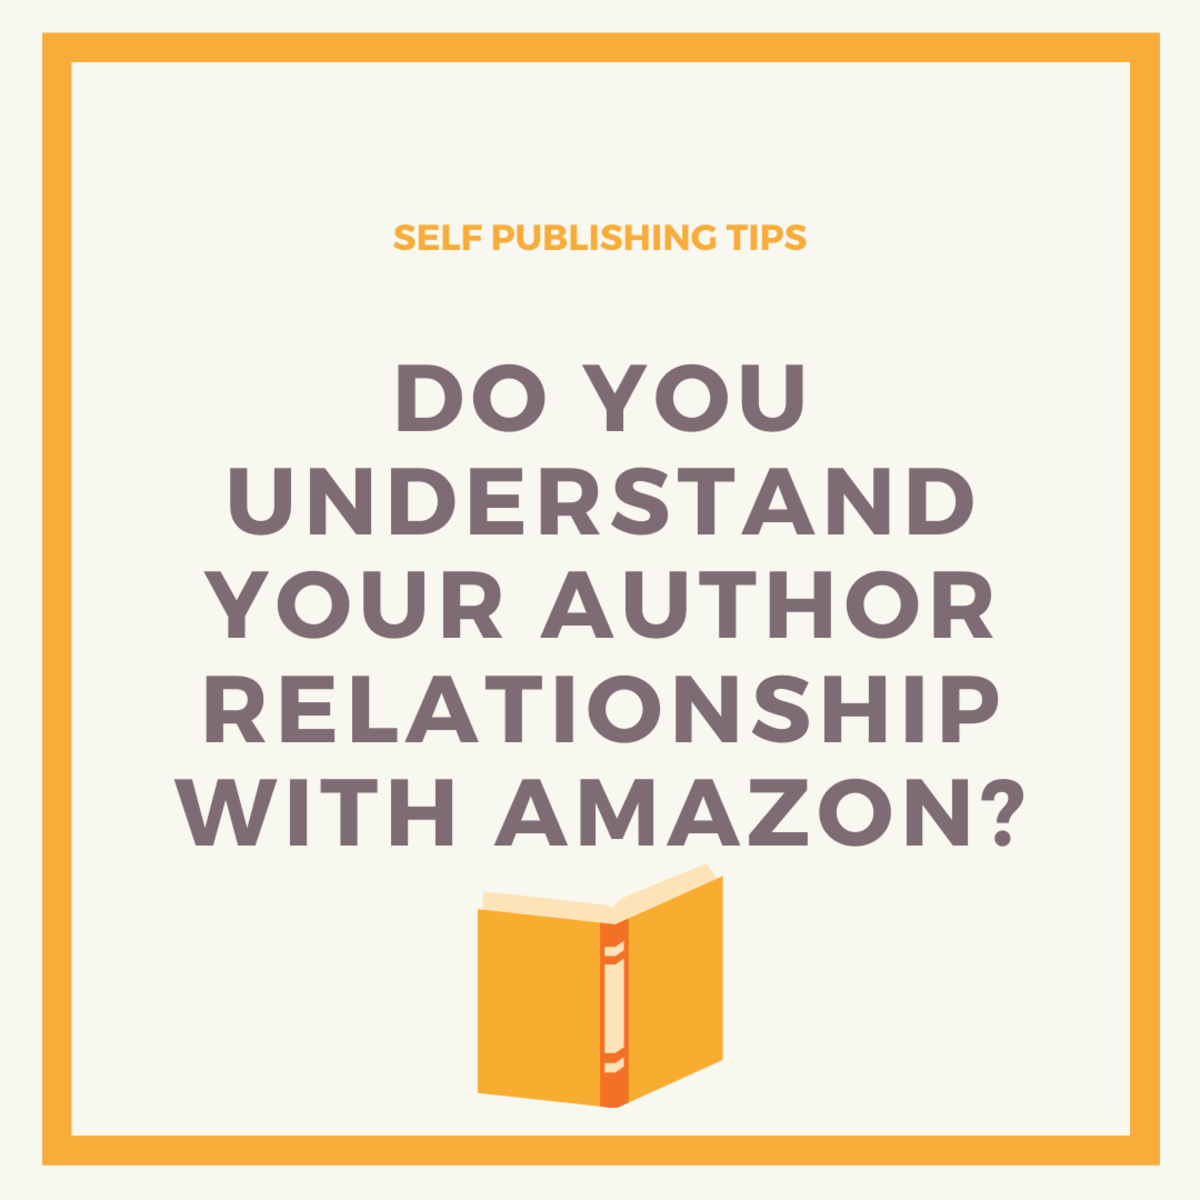 Do You Understand Your Author Relationship With Amazon?